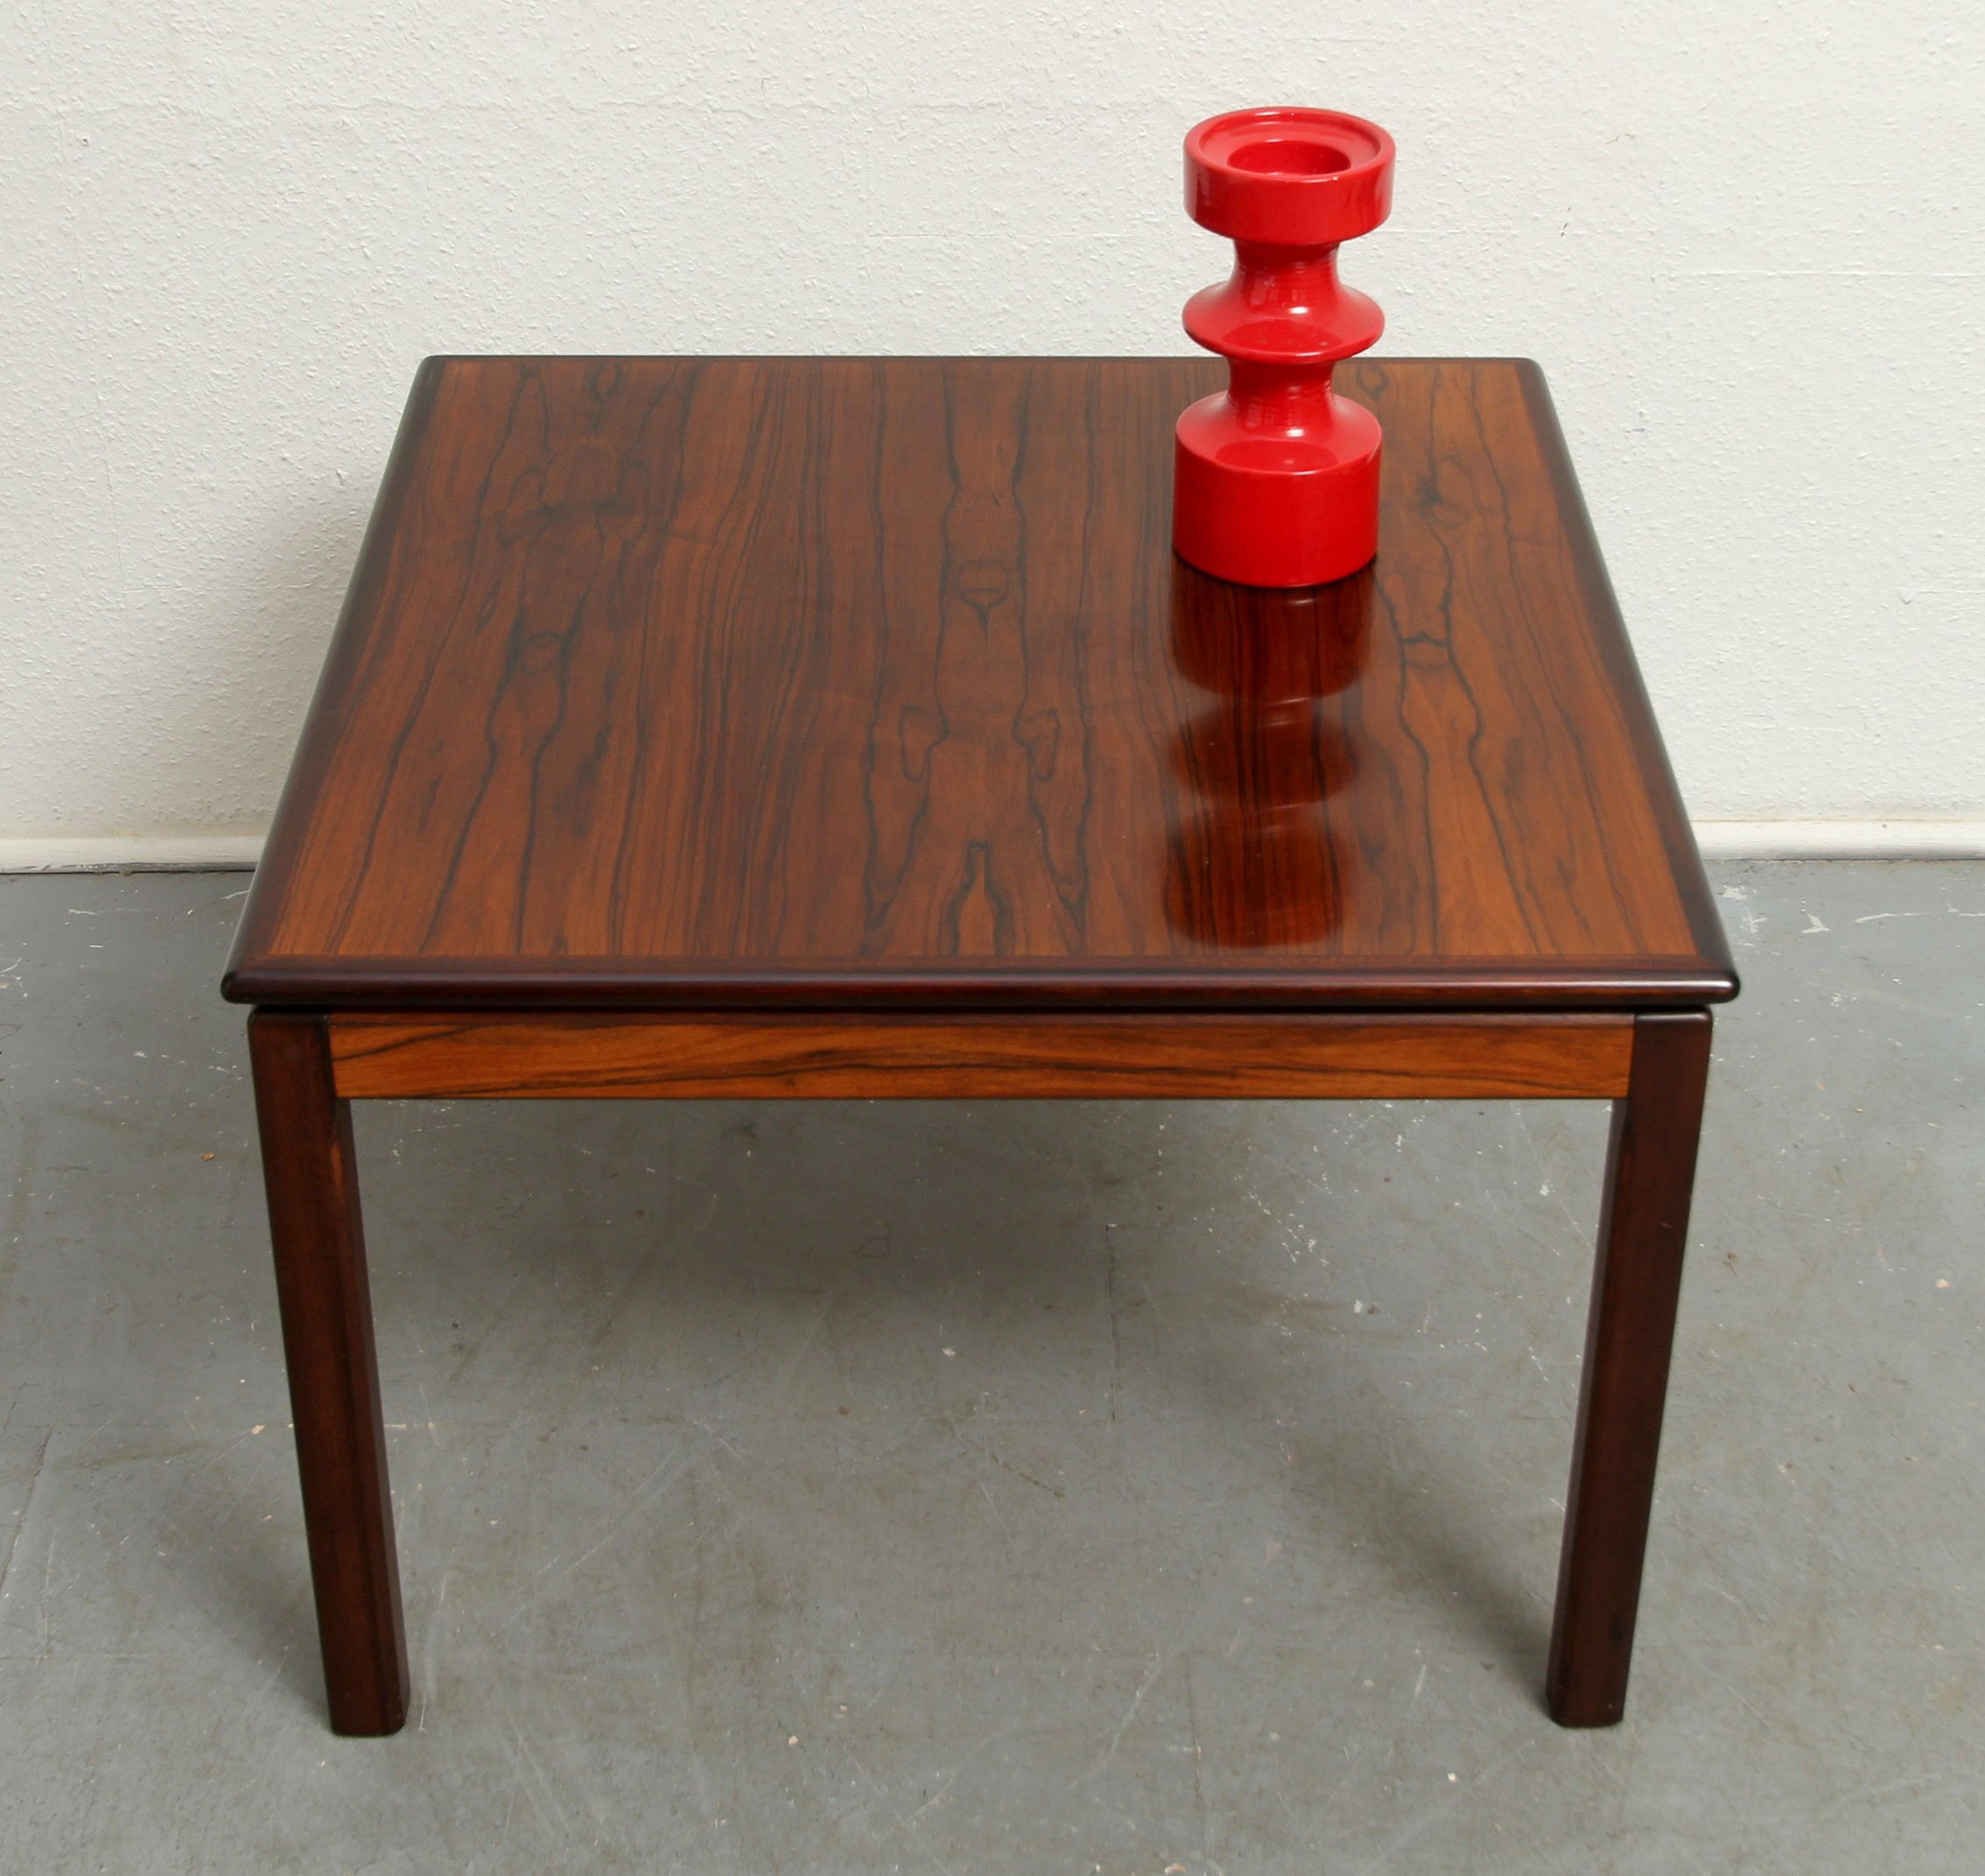 Square Bruksbo Norway Coffee Table In Rosewood 1960s Previous Next